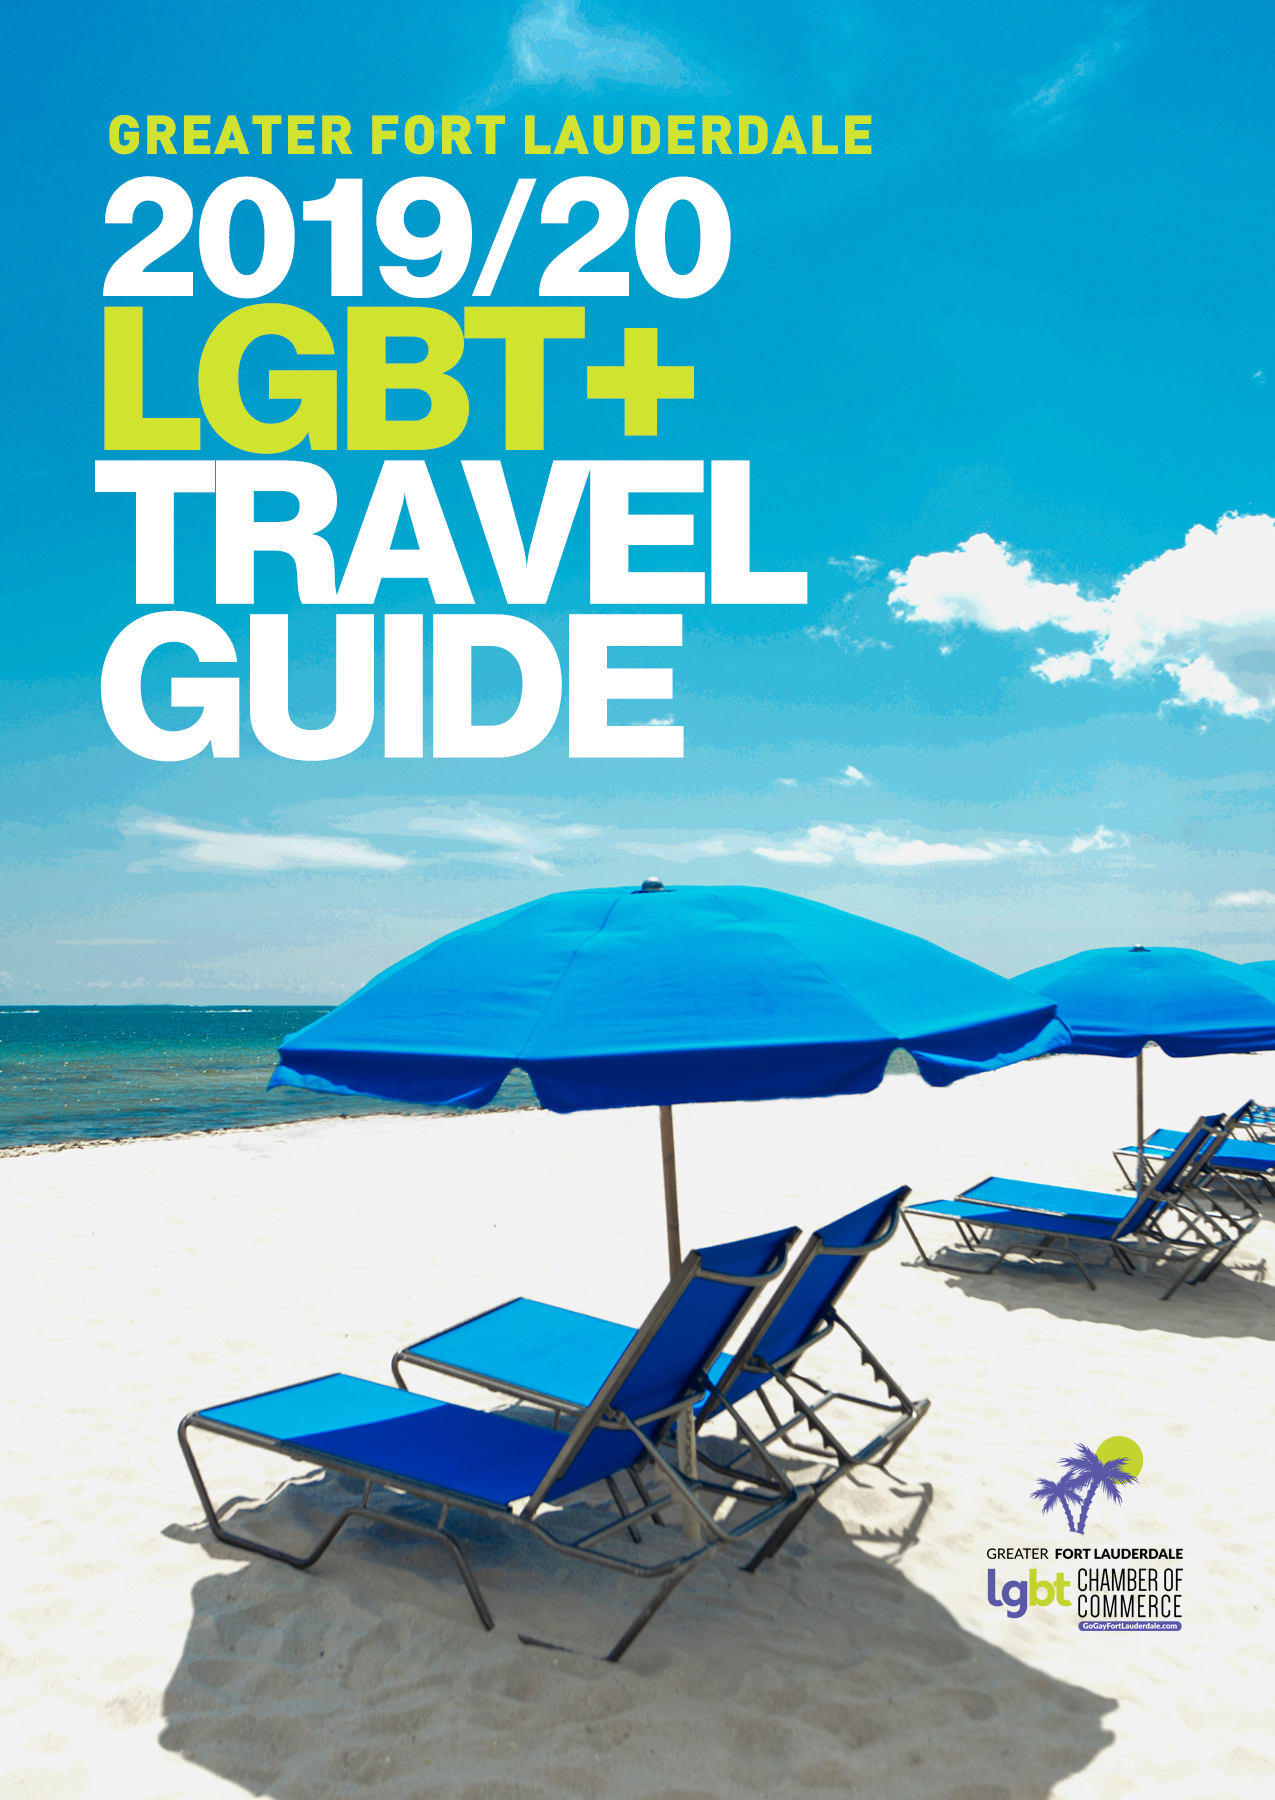 Travel Guide 2019/20